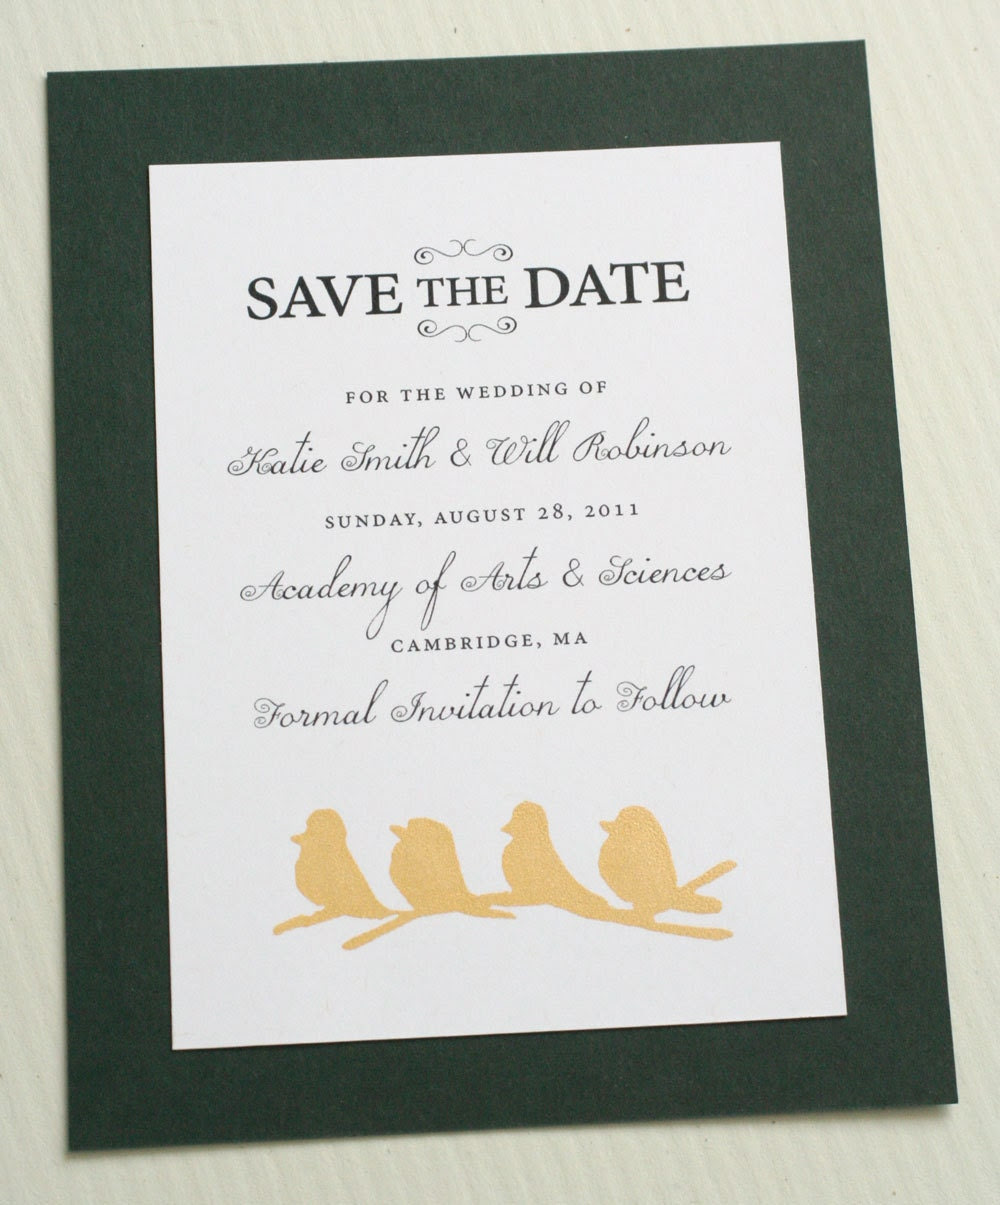 Four little birds screen-printed in metallic gold save the date card